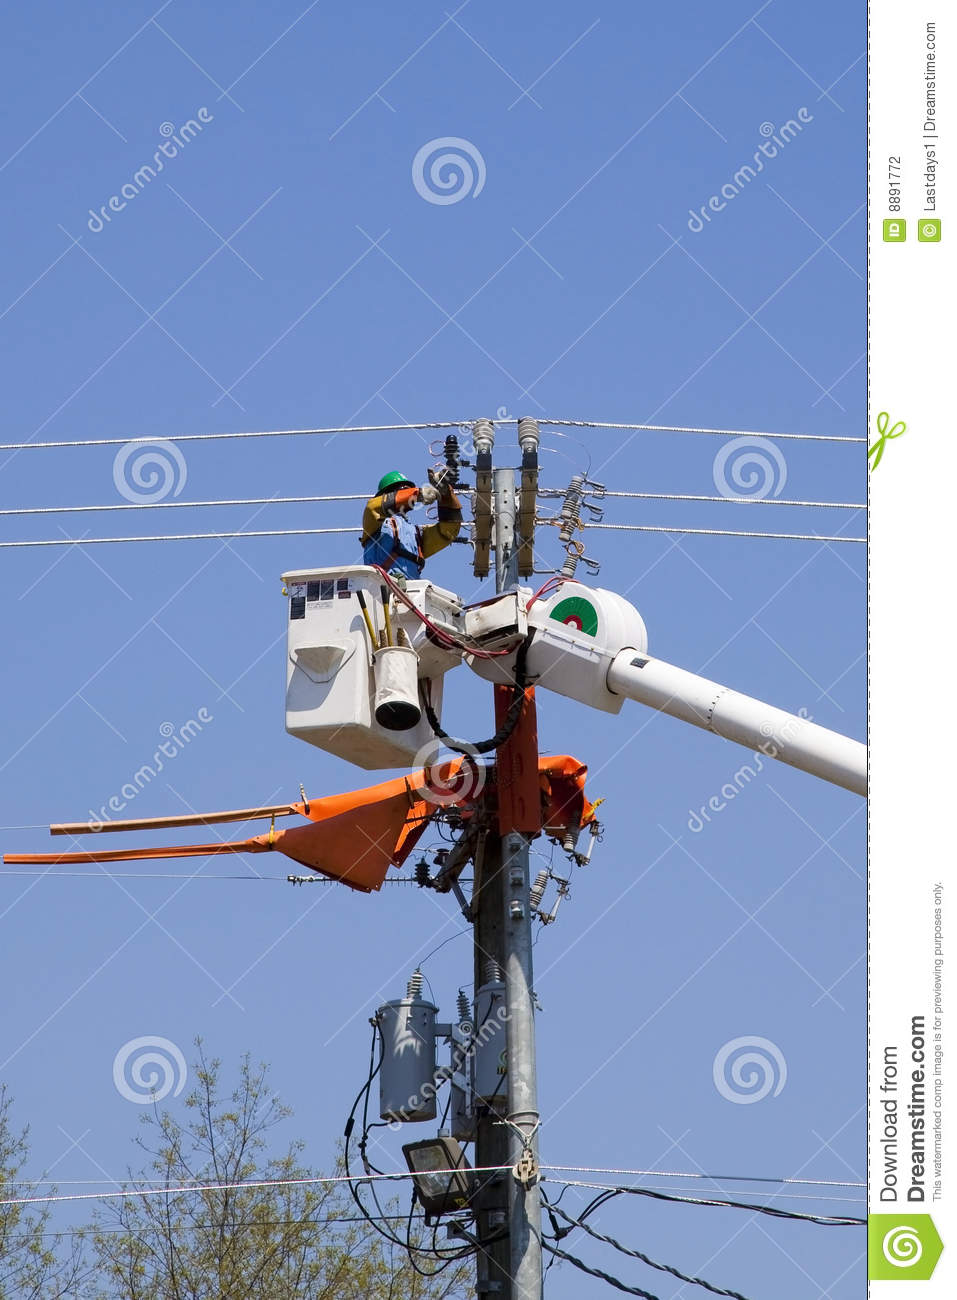 High lines construction stock photo  Image of line, electricity